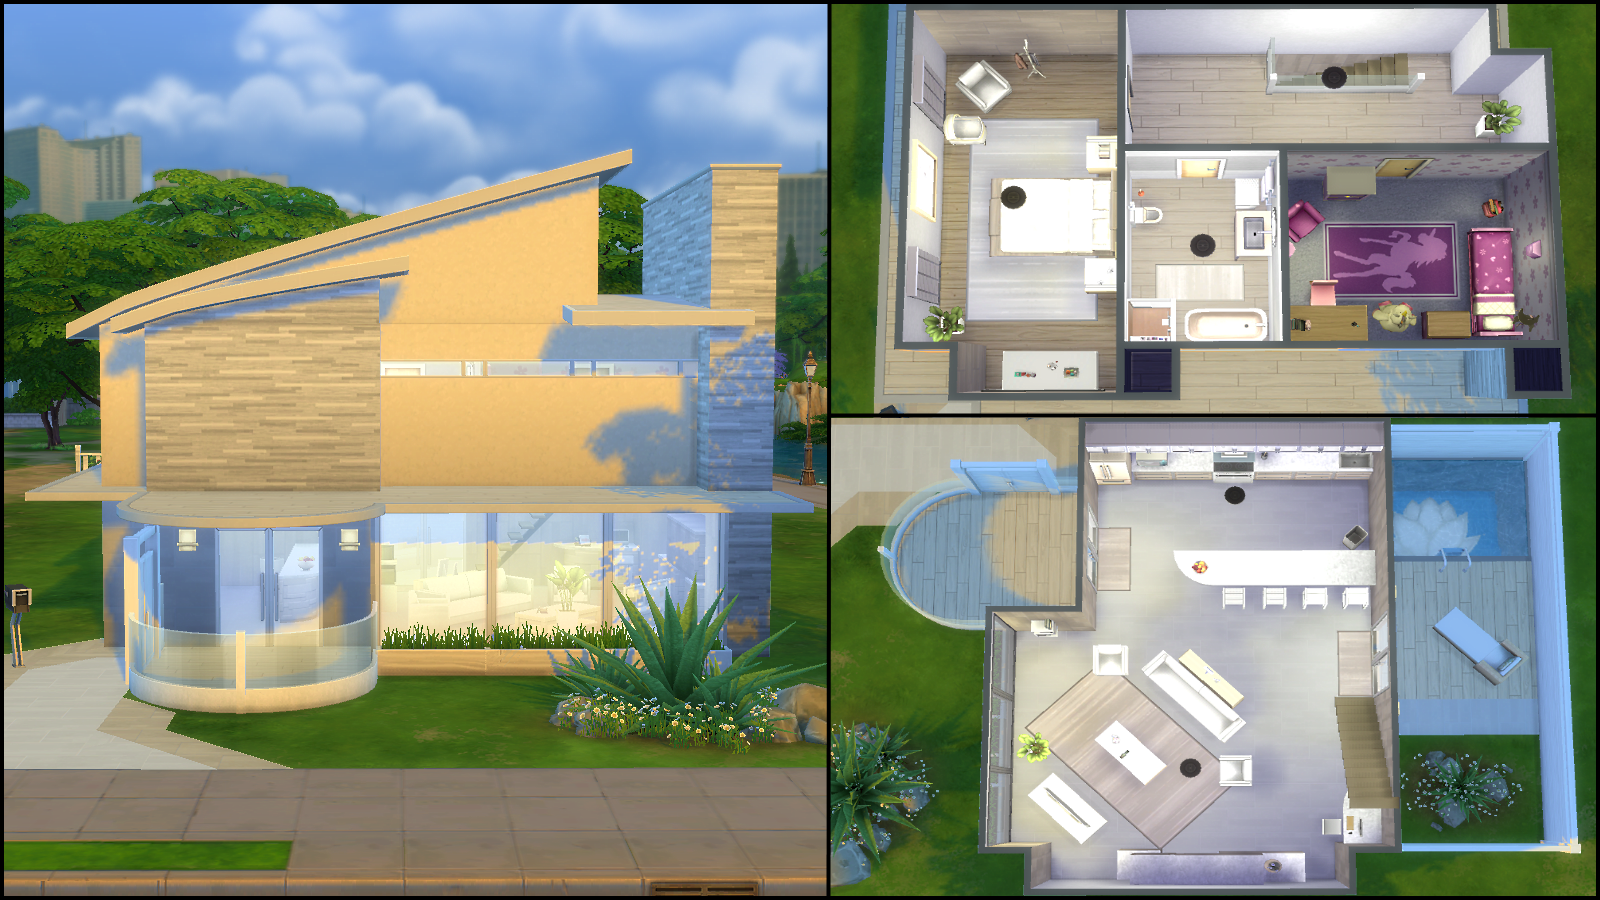 The sims 4 gallery spotlight simsvip for House plans for family of 4